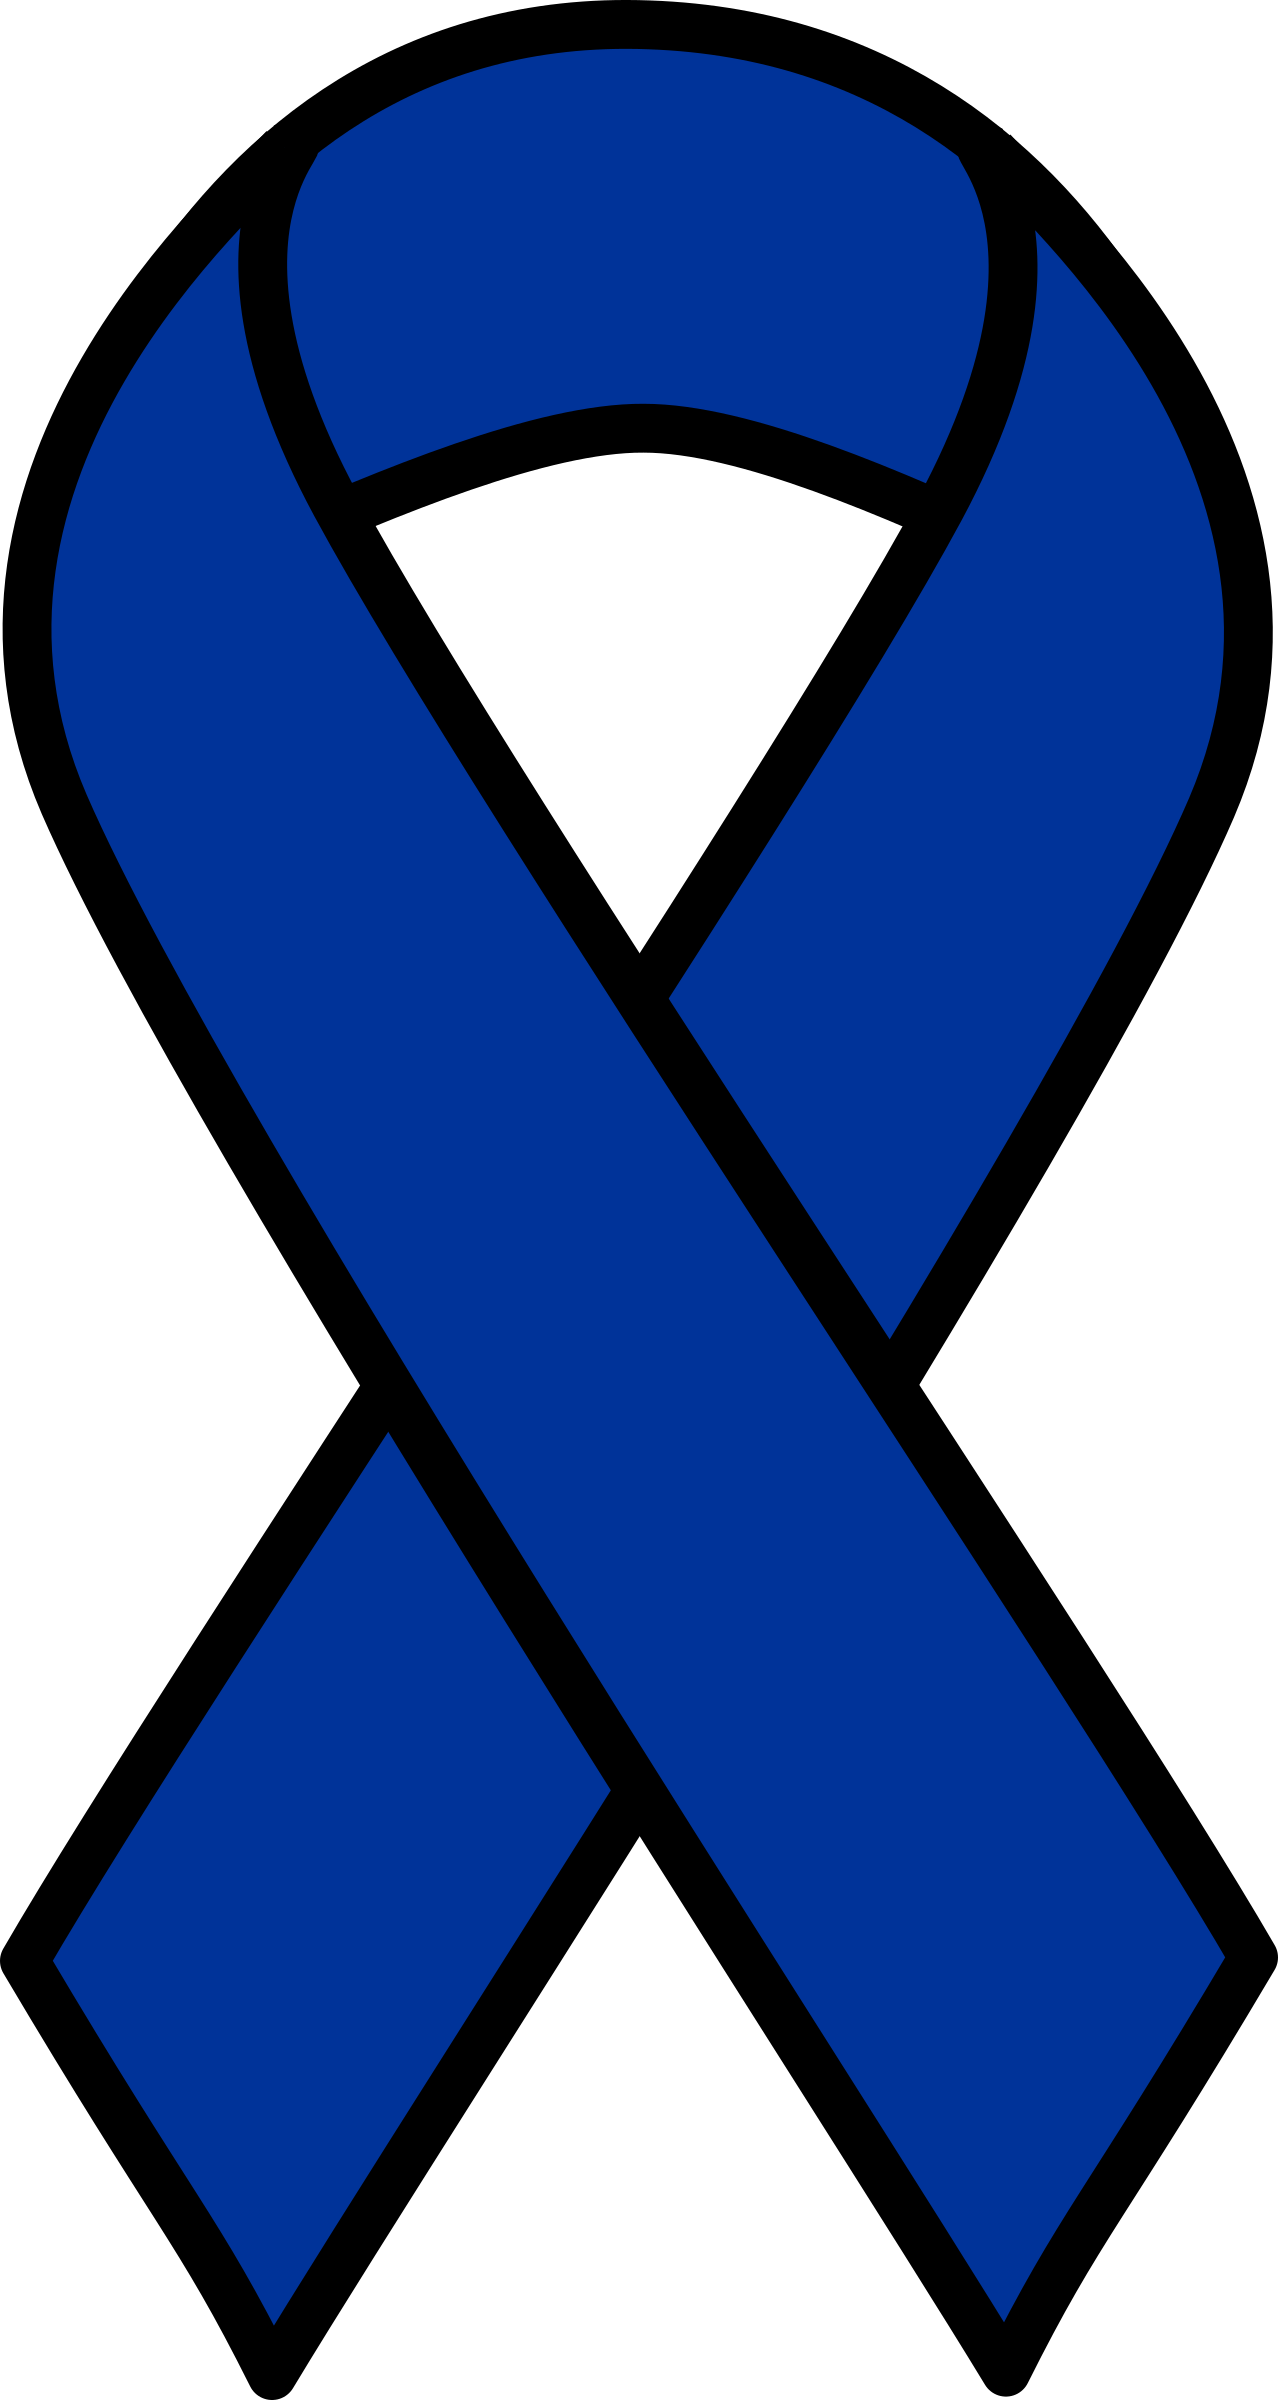 Drink clipart drinking colon. Blue cancer ribbon big